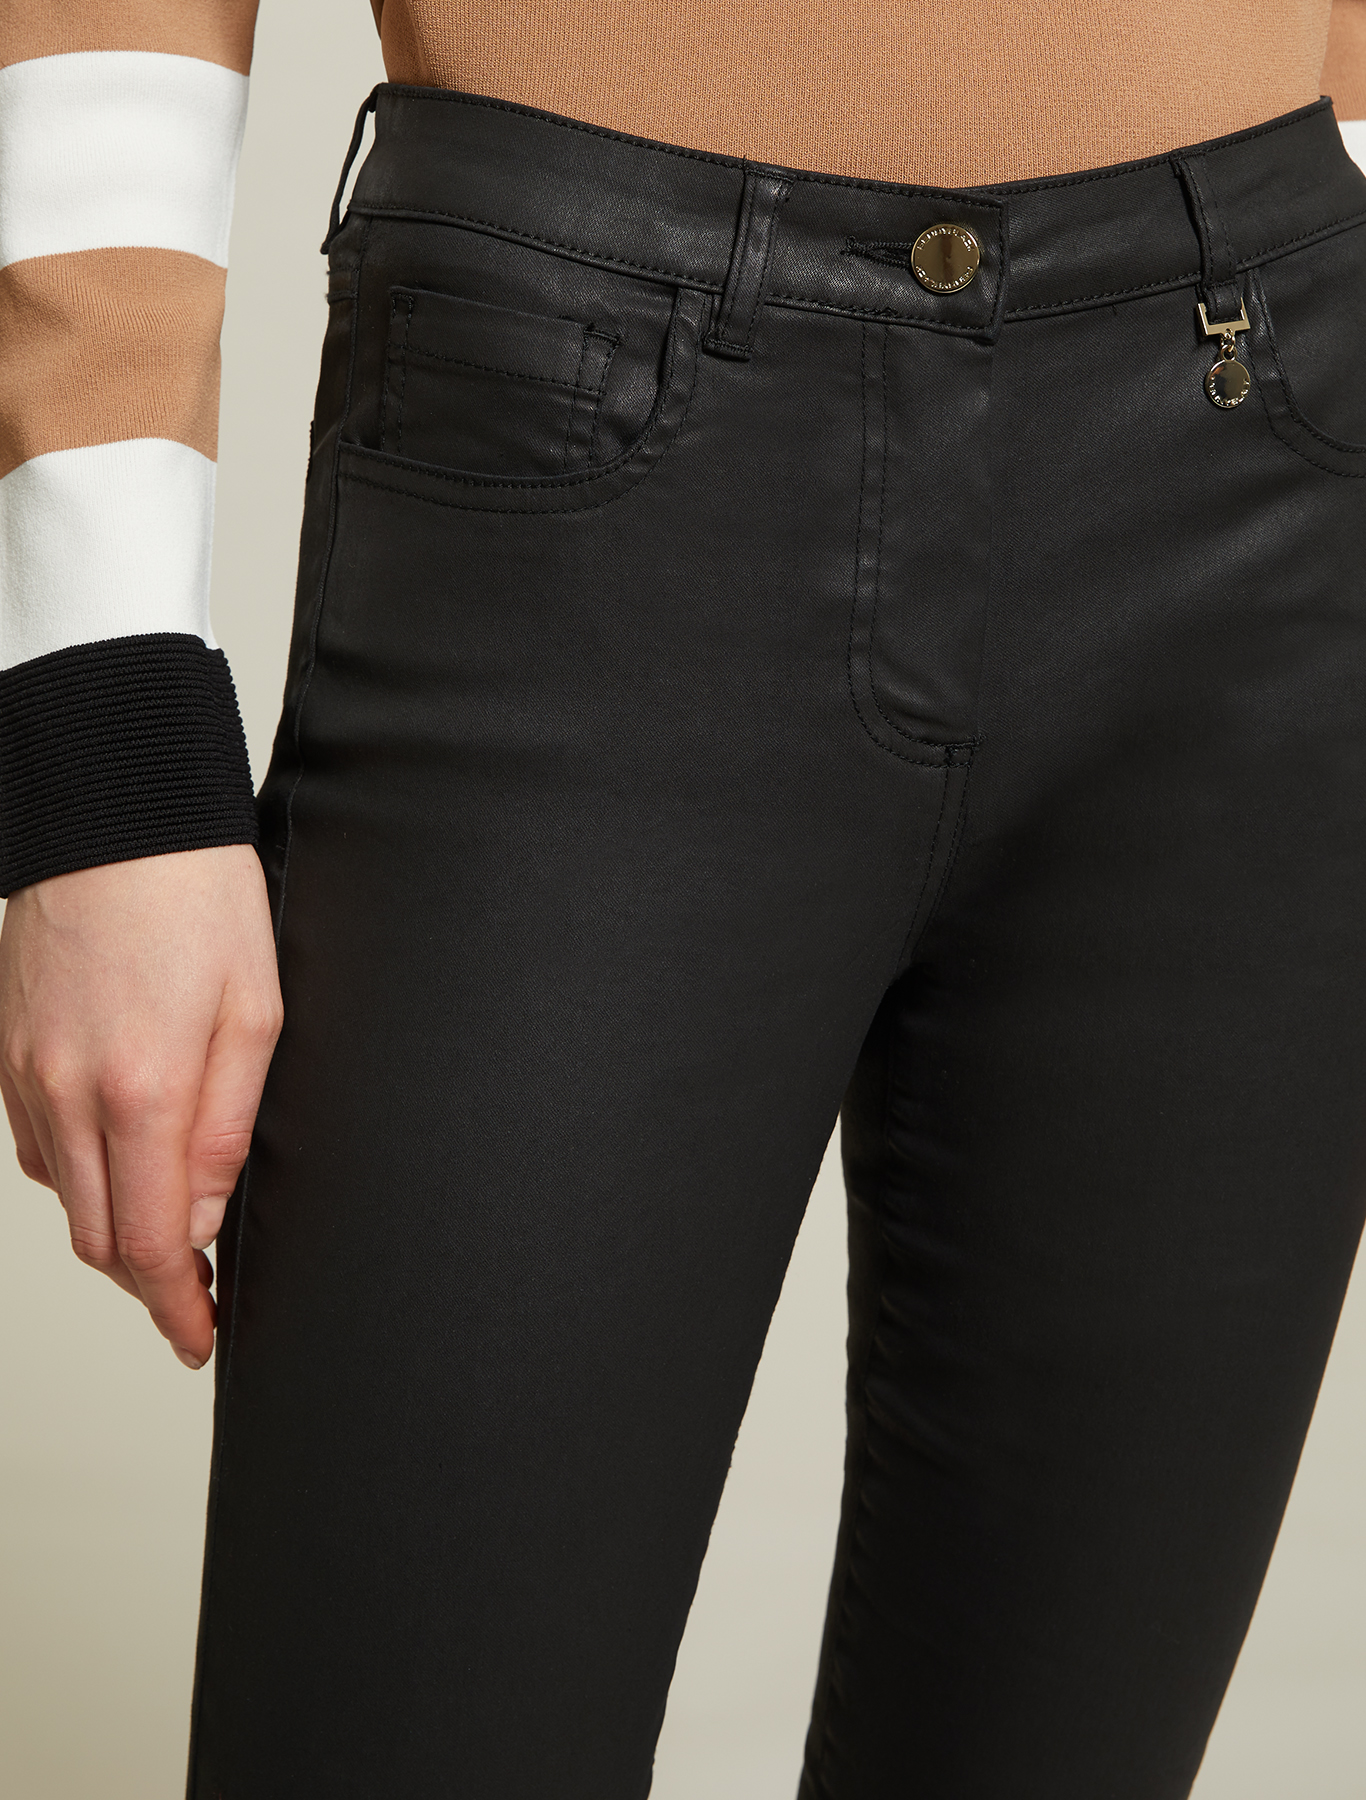 Skinny pants in cotton satin - black - pennyblack